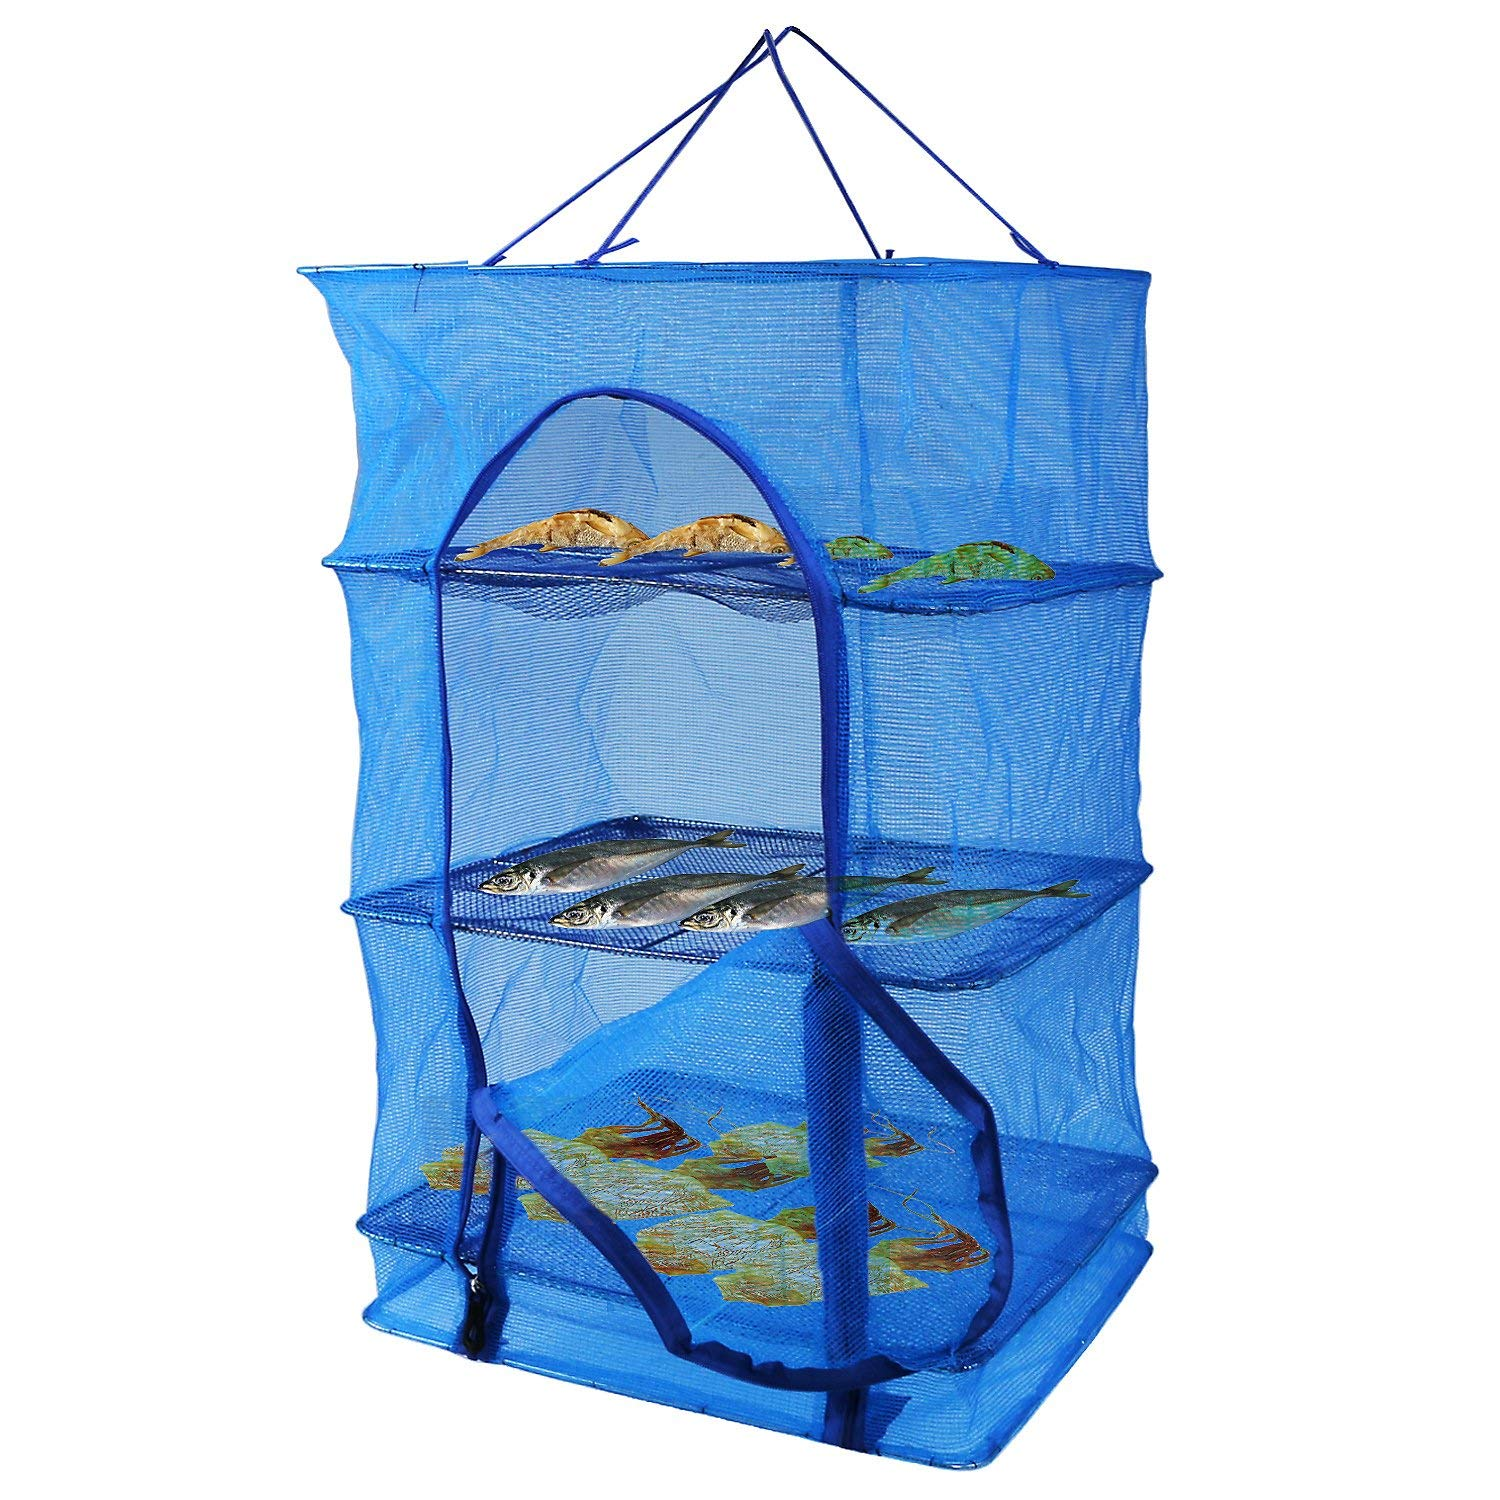 Fish Mesh Hanging Drying Net Food Dehydrator Durable Folding 4 Layers Fish Vegetable Dishes Dryer Net Drying Rack